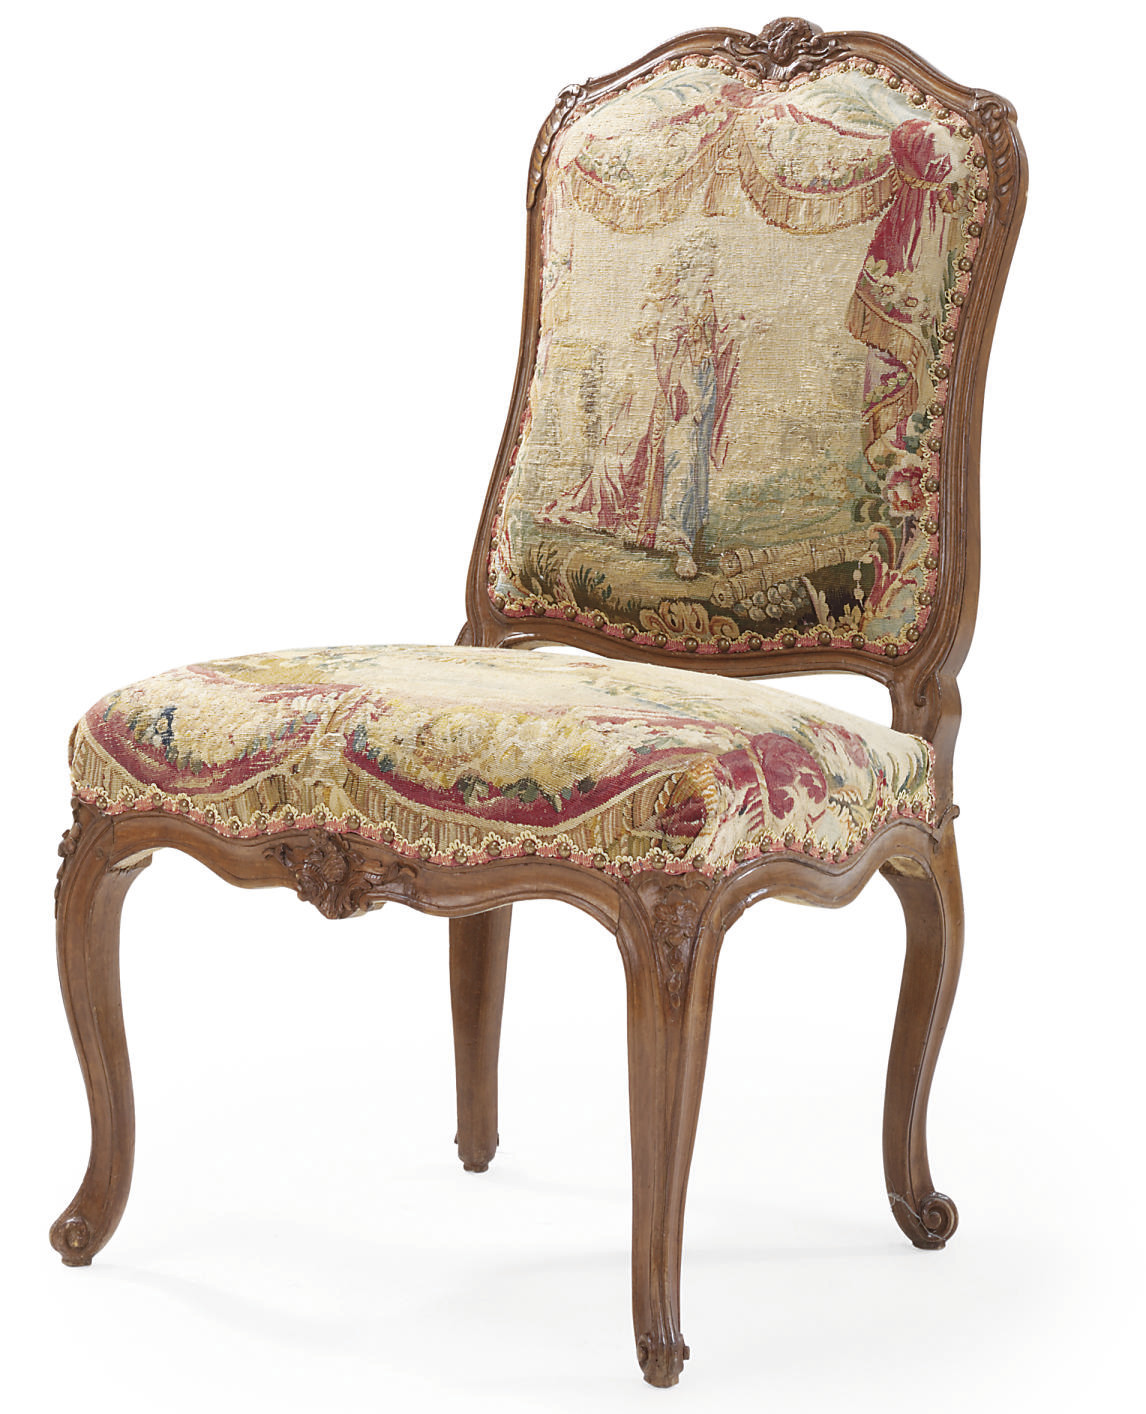 A LOUIS XV BEECHWOOD AND AUBUSSON TAPESTRY CHAISE A LA REINE